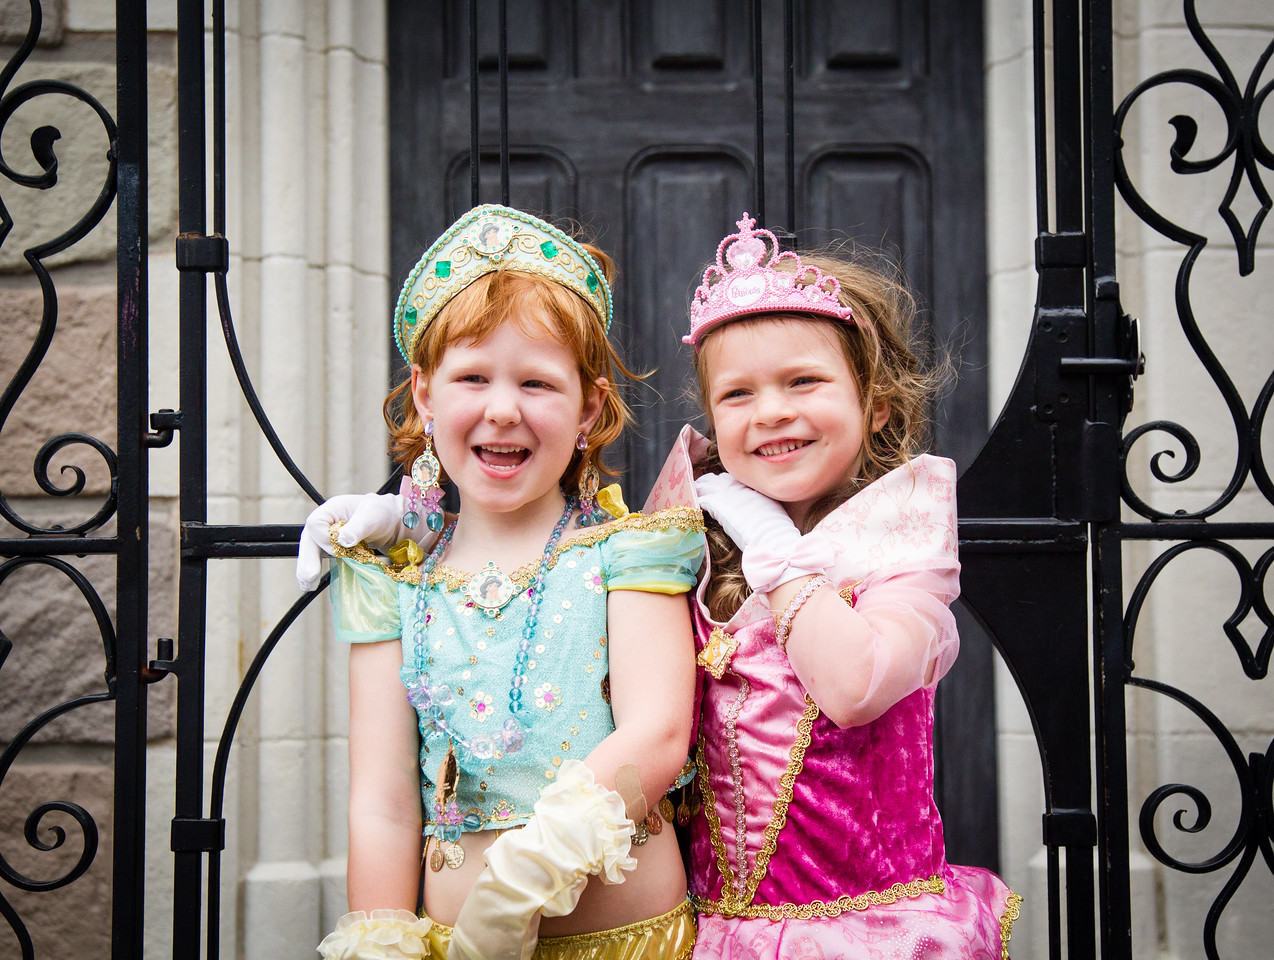 Princesses Sophie and Reese